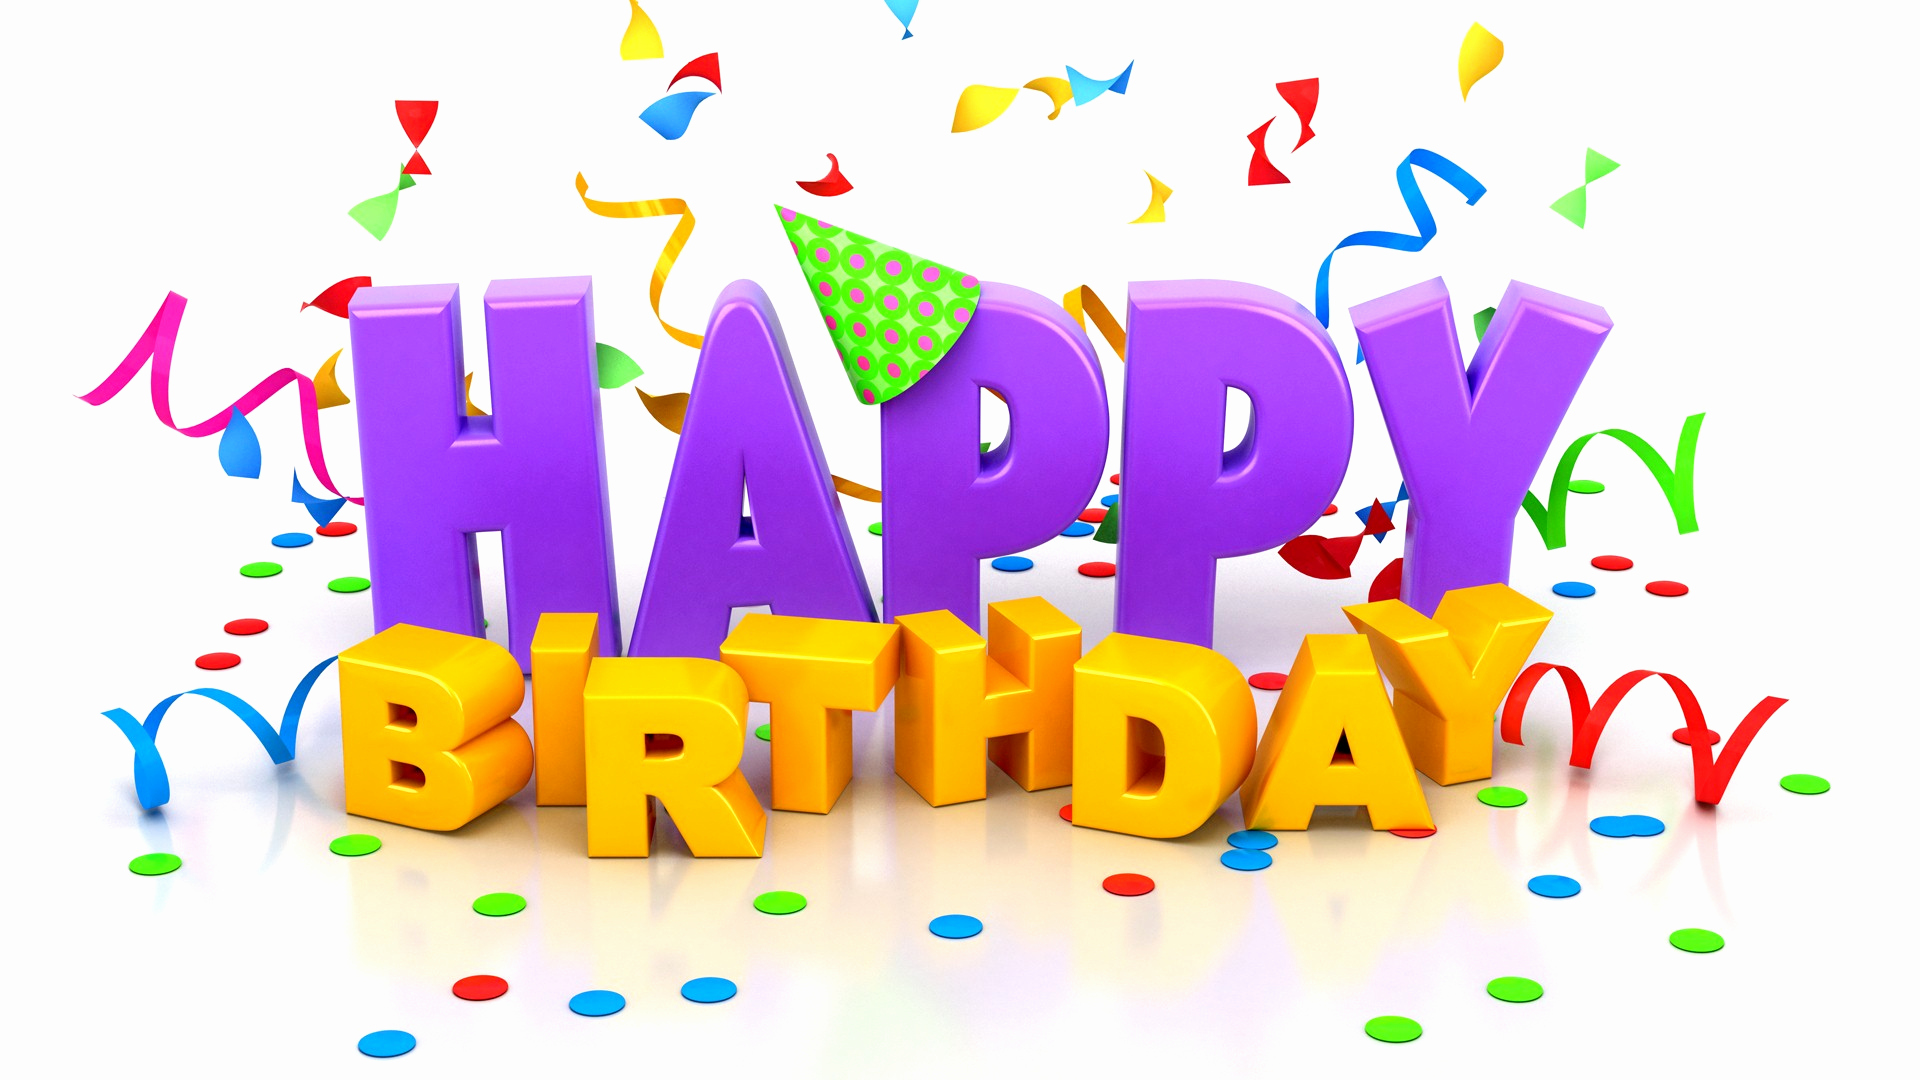 Happy Bday Wallpapers Free Awesome Happy Birthday Wallpapers Full Hd Free Download